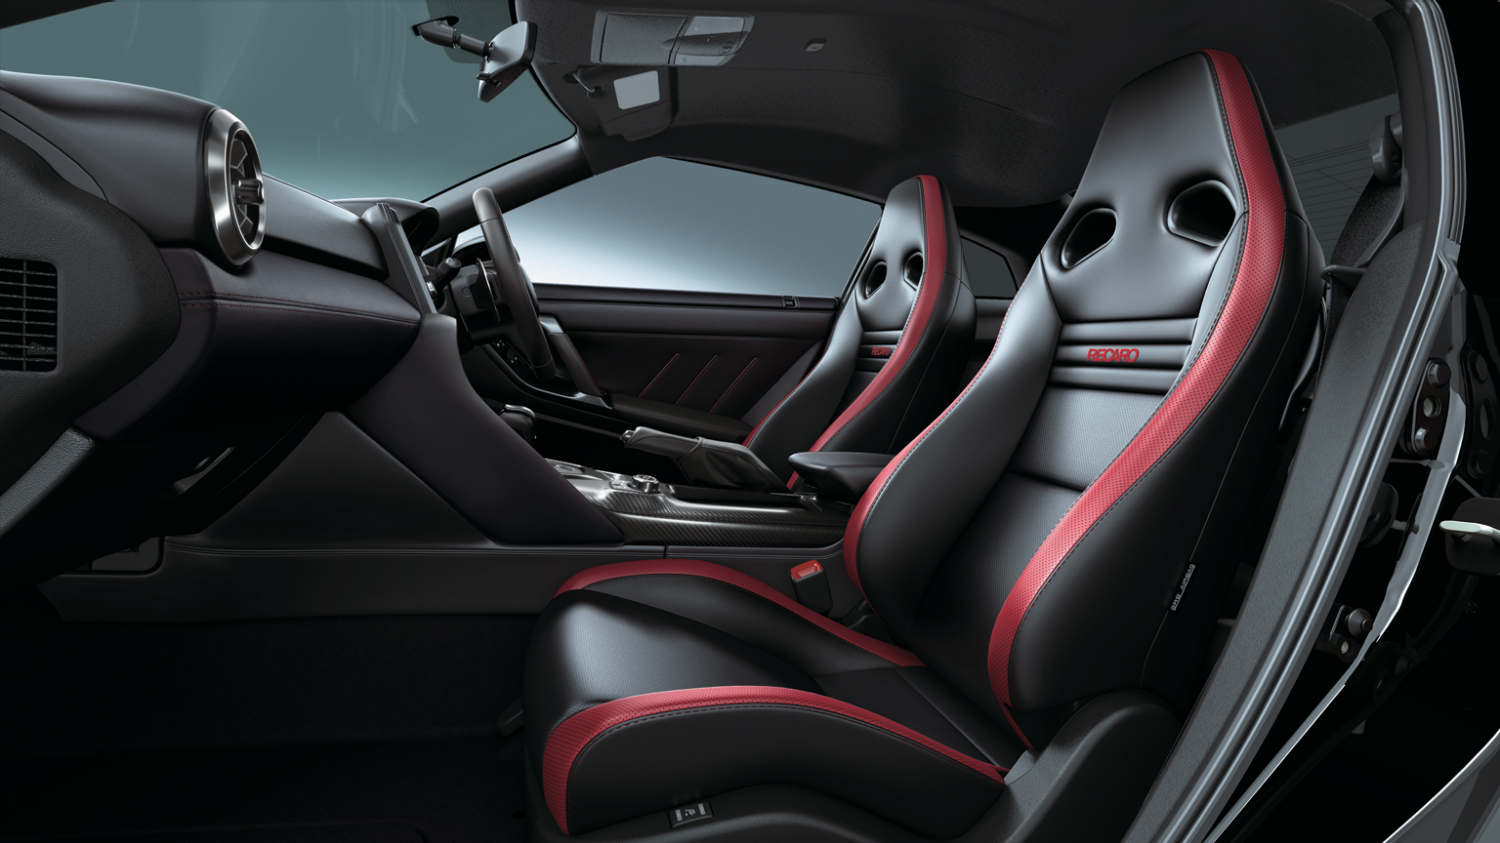 Nissan GT-R interior filled with premium details